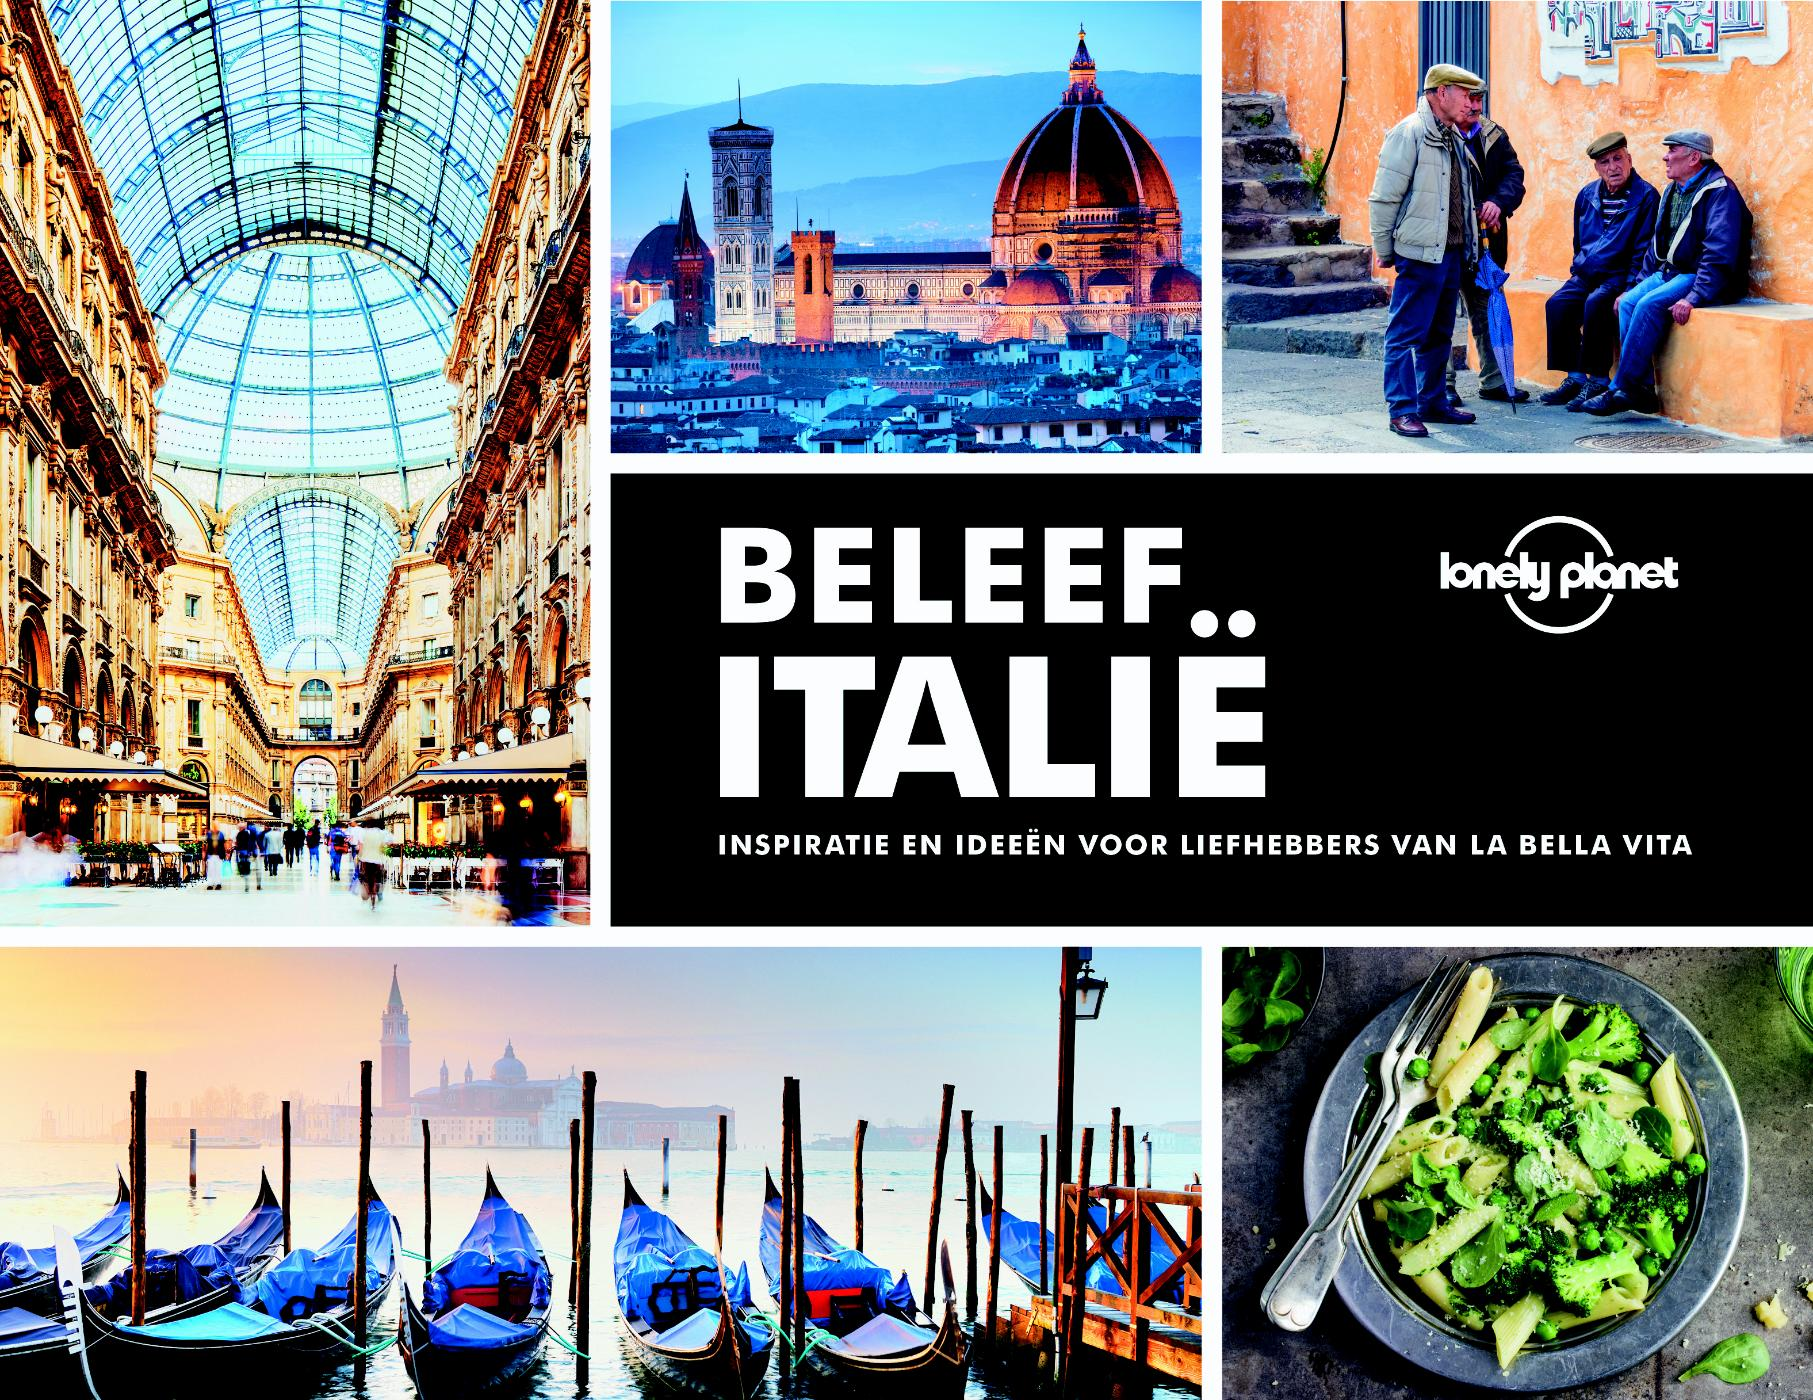 Lonely planet: Beleef Italië